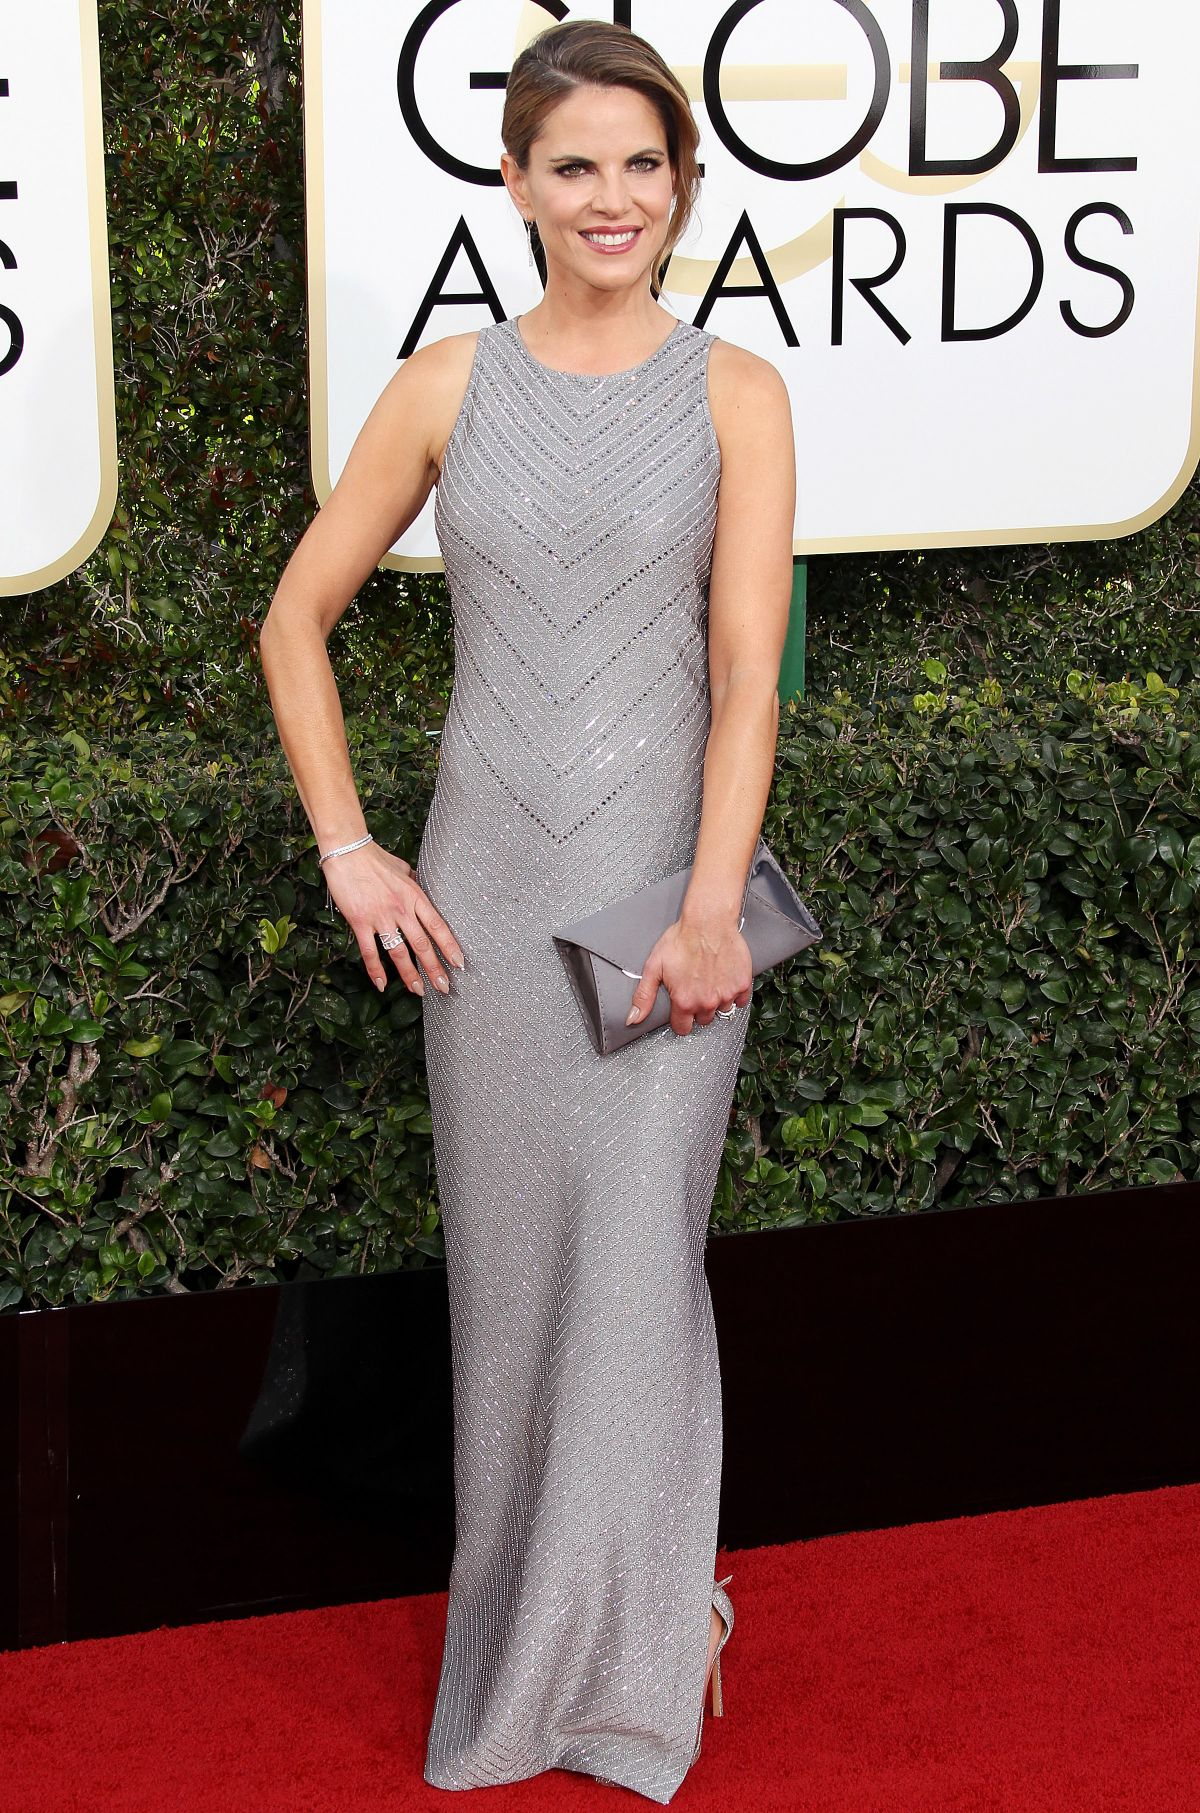 NATALIE MORALES at 74th Annual Golden Globe Awards in Beverly Hills 01/08/2017